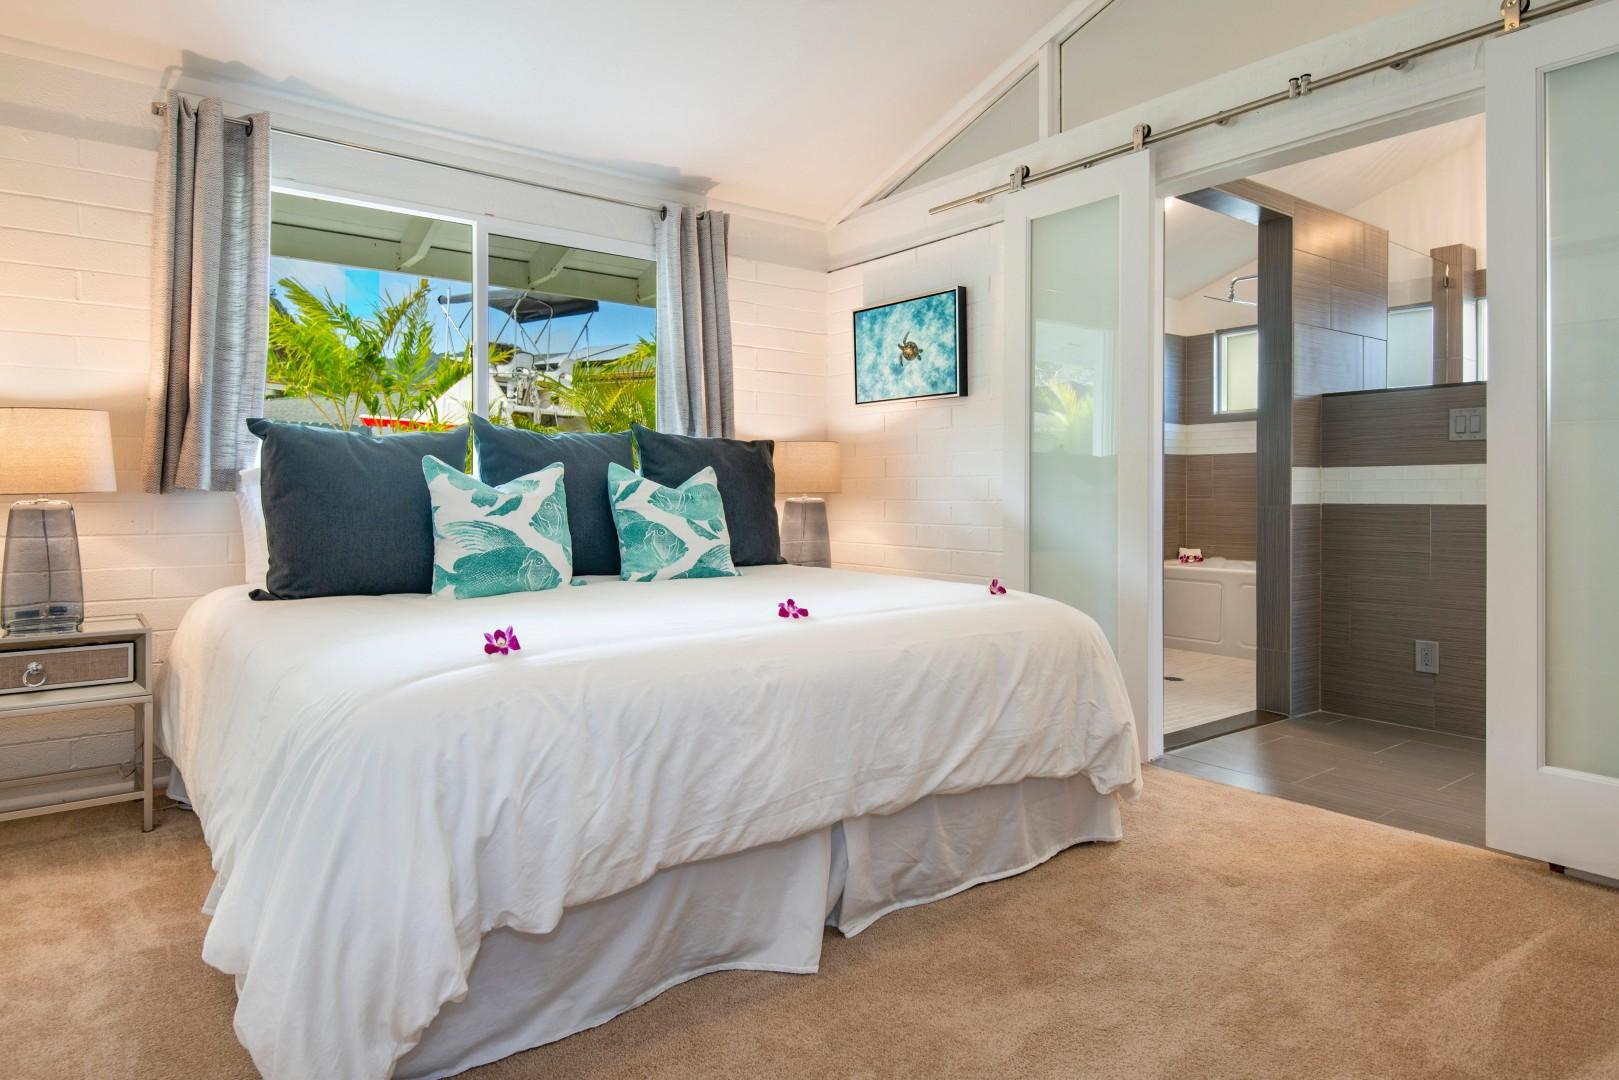 Master bedroom, king bed, split ac, and en-suite bathroom that leads out to the lanai and marina.